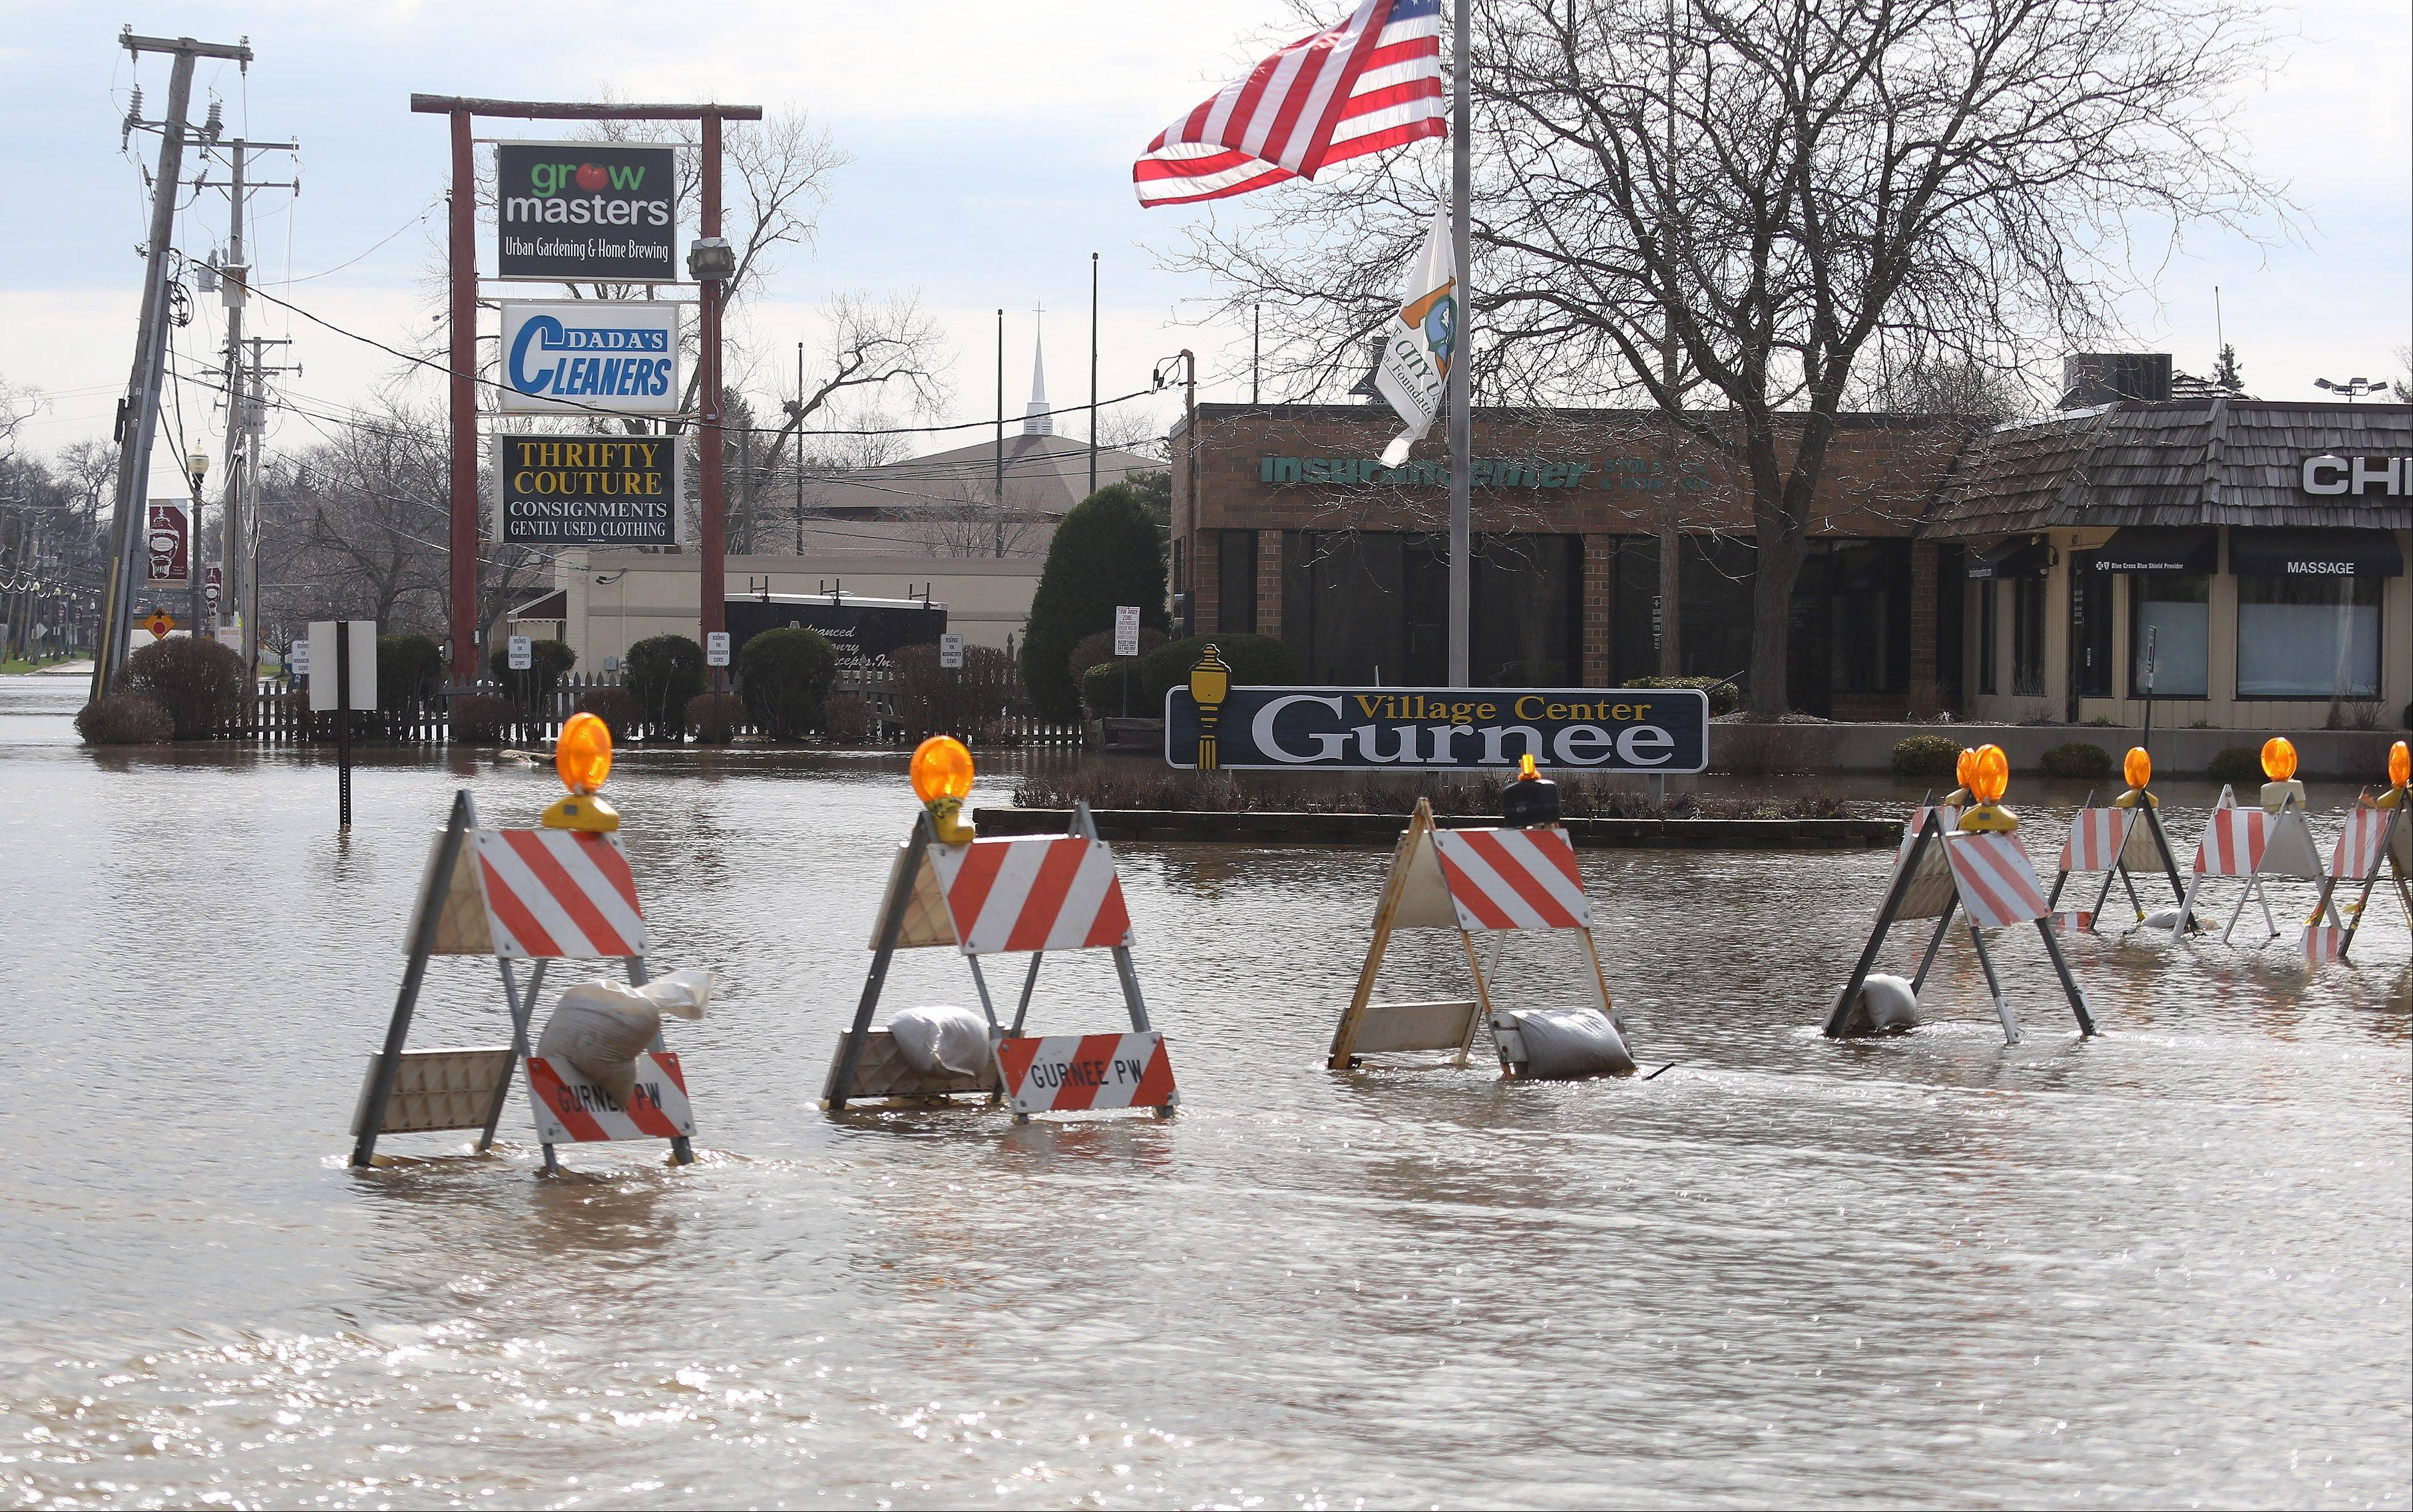 The streets of downtown Gurnee are underwater after flooding along the Des Plaines River Sunday.